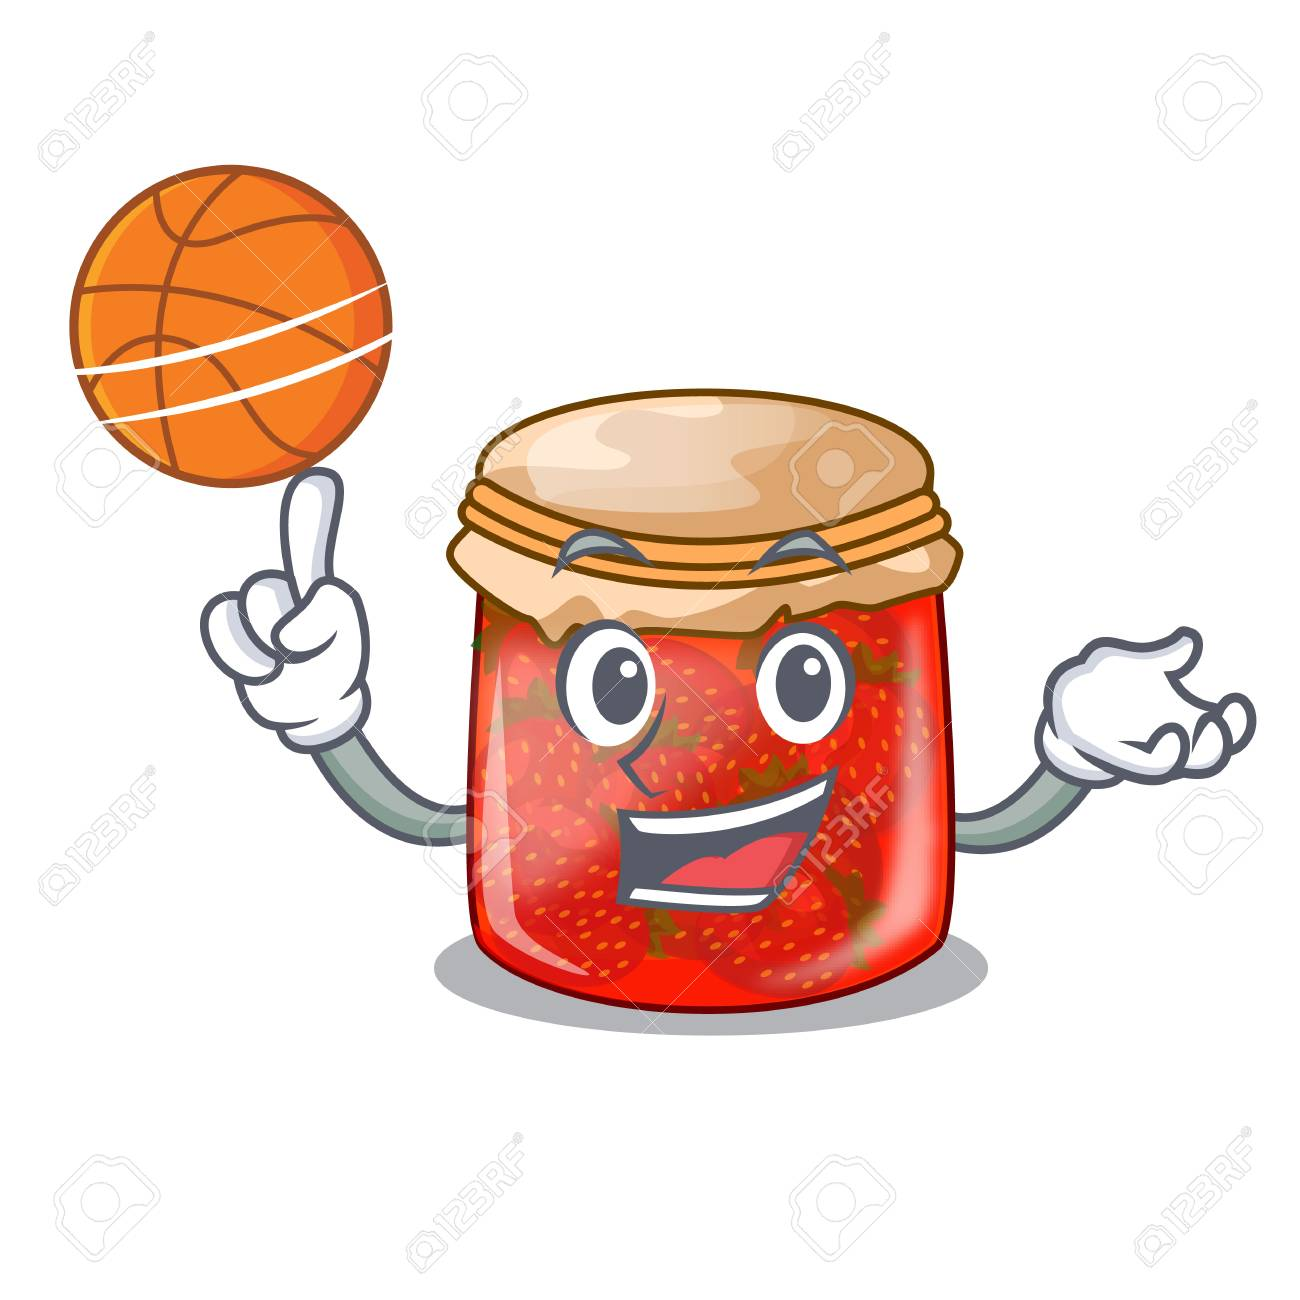 With basketball character homemade strawberry marmalade in the